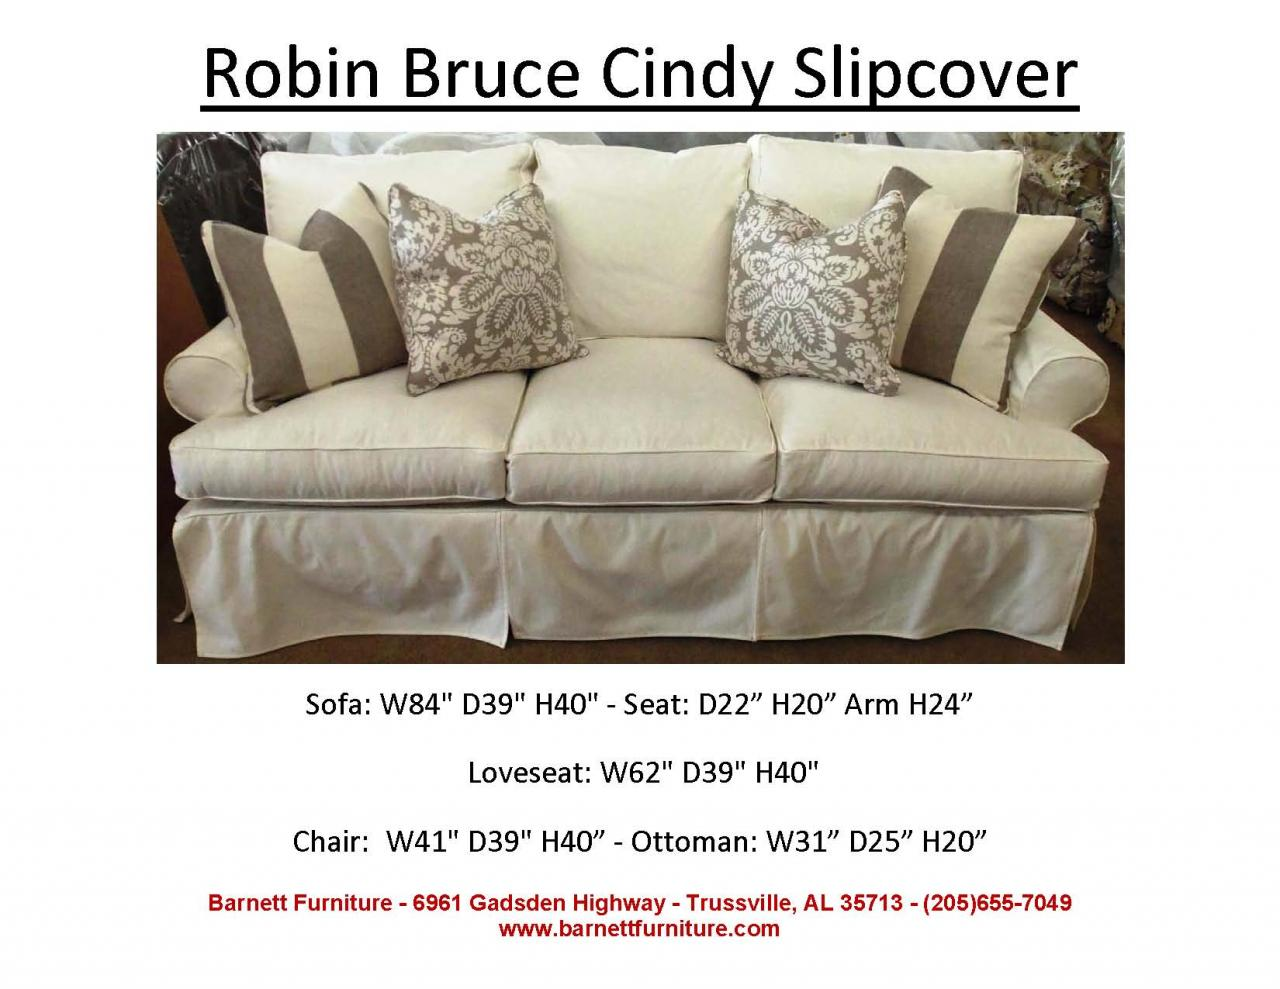 Barnett Furniture Slipcover Sofas Sectionals Chair And Ottoman